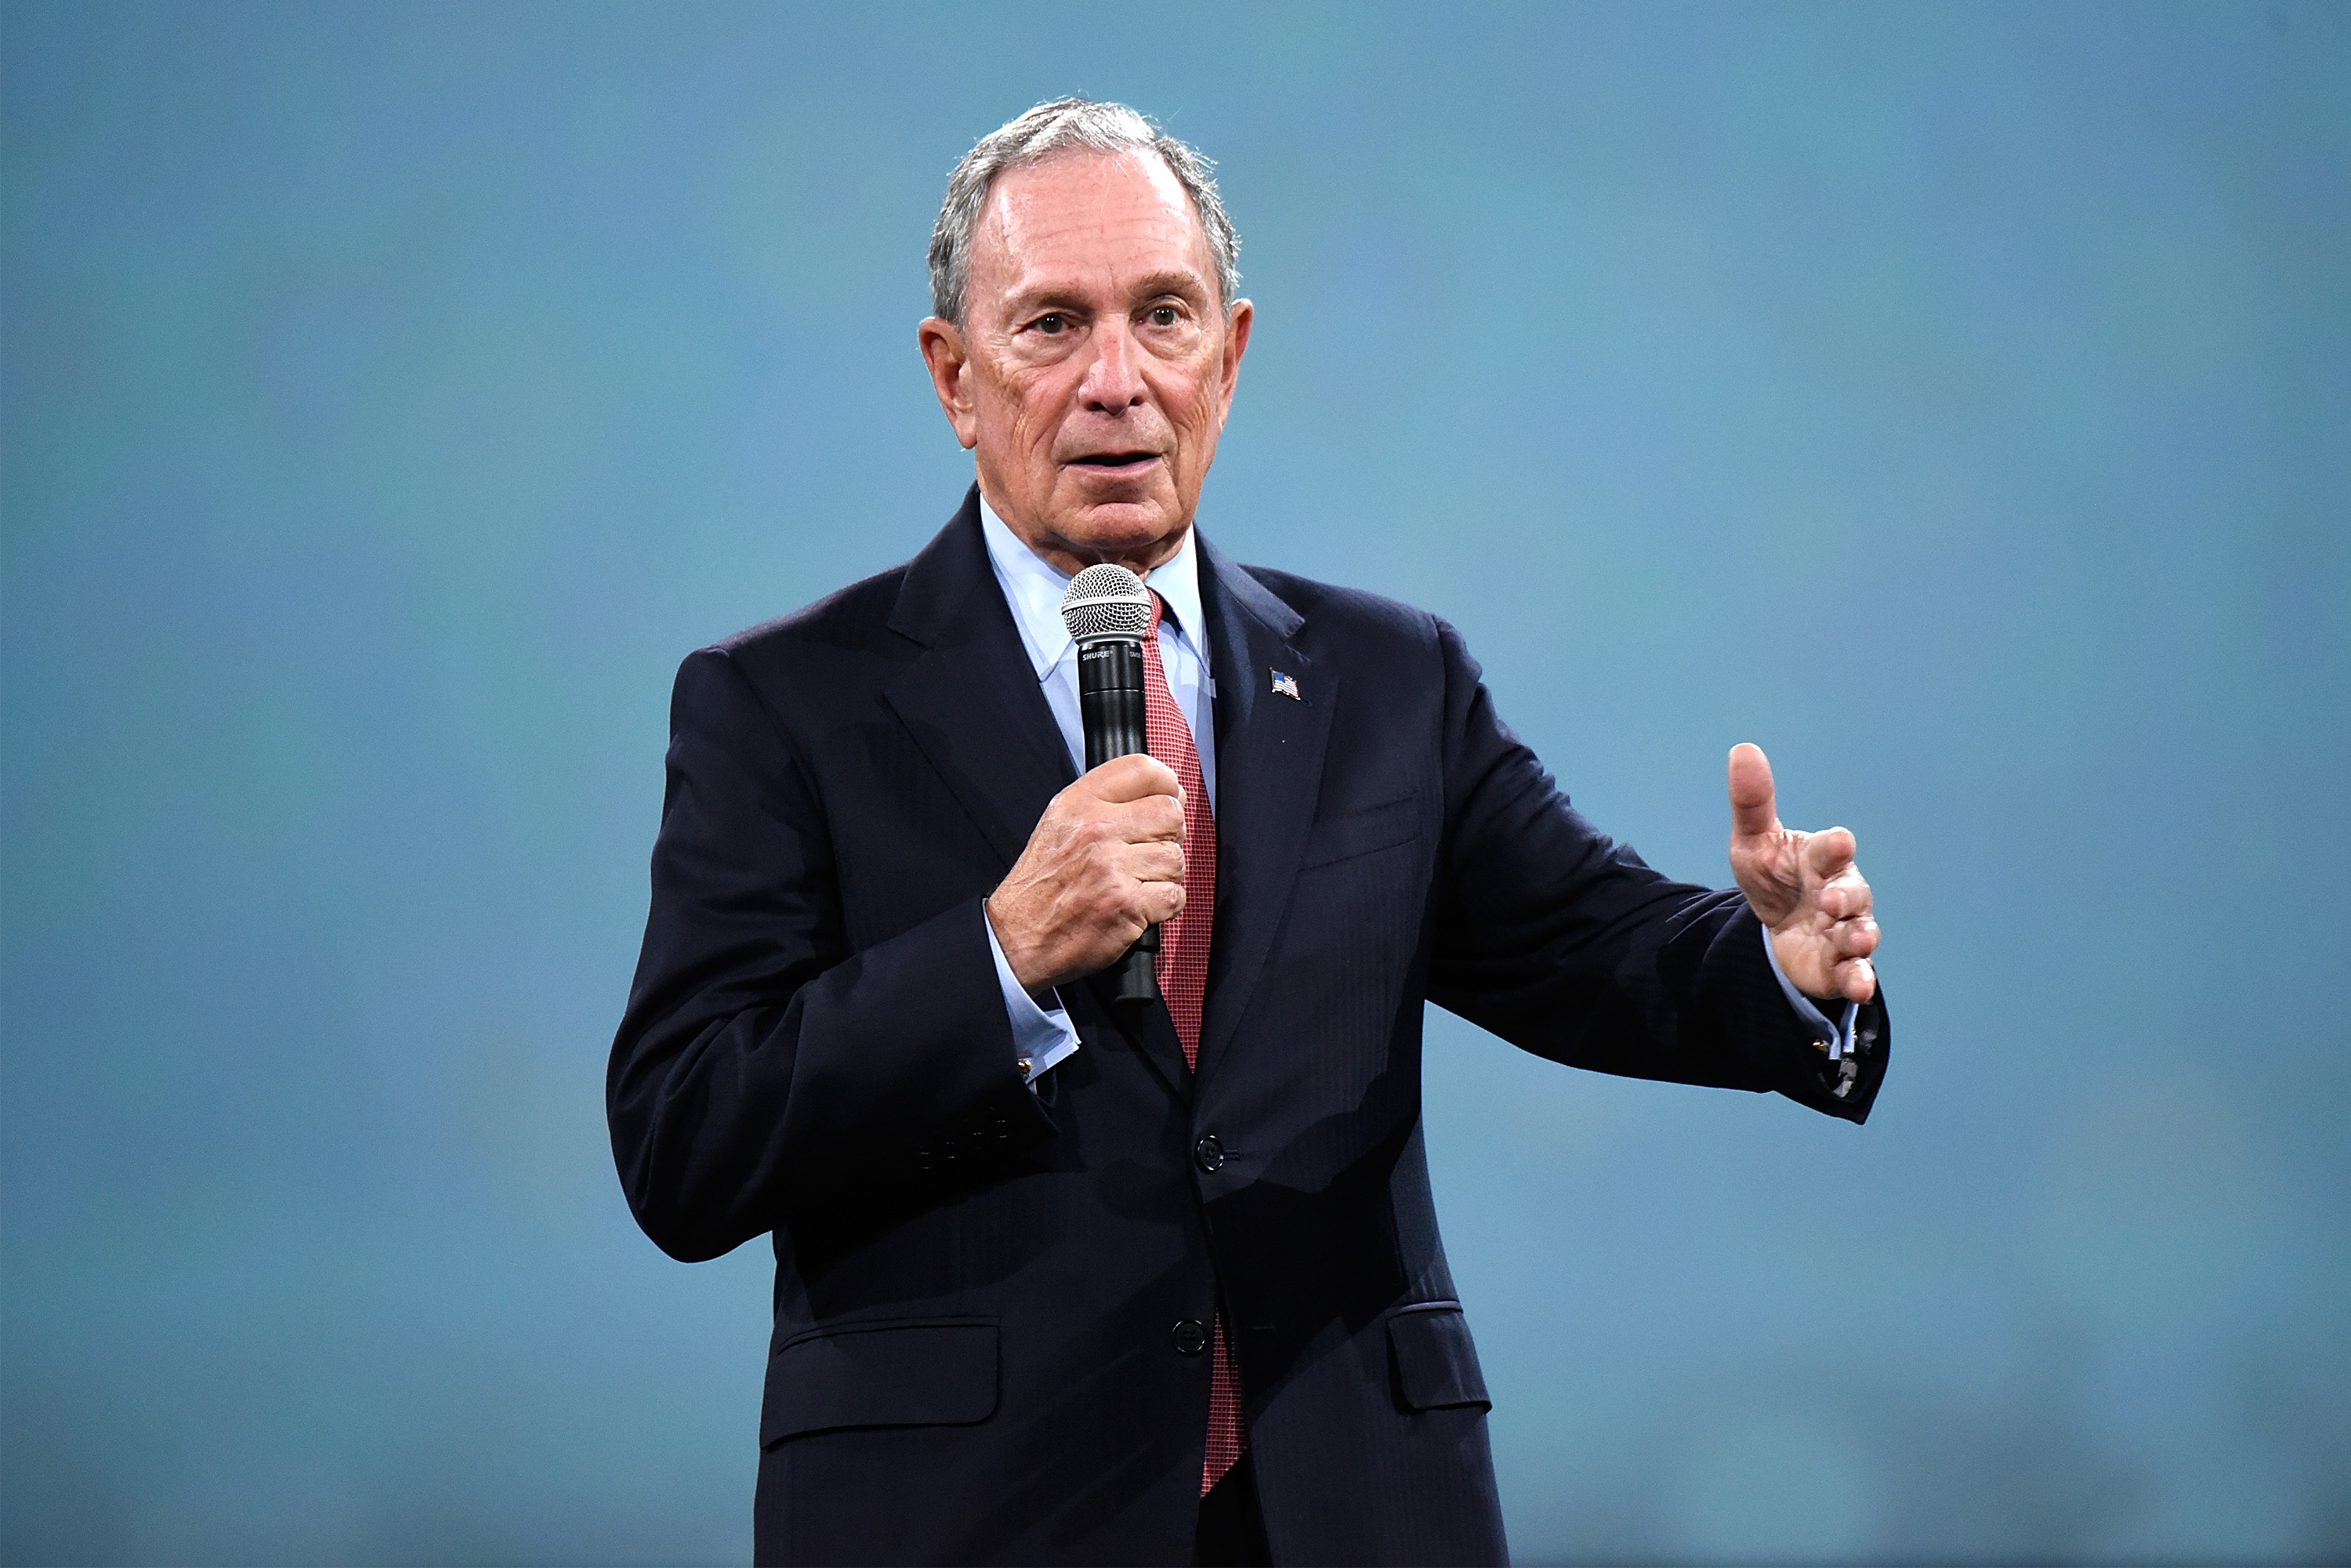 michael bloomberg - photo #1